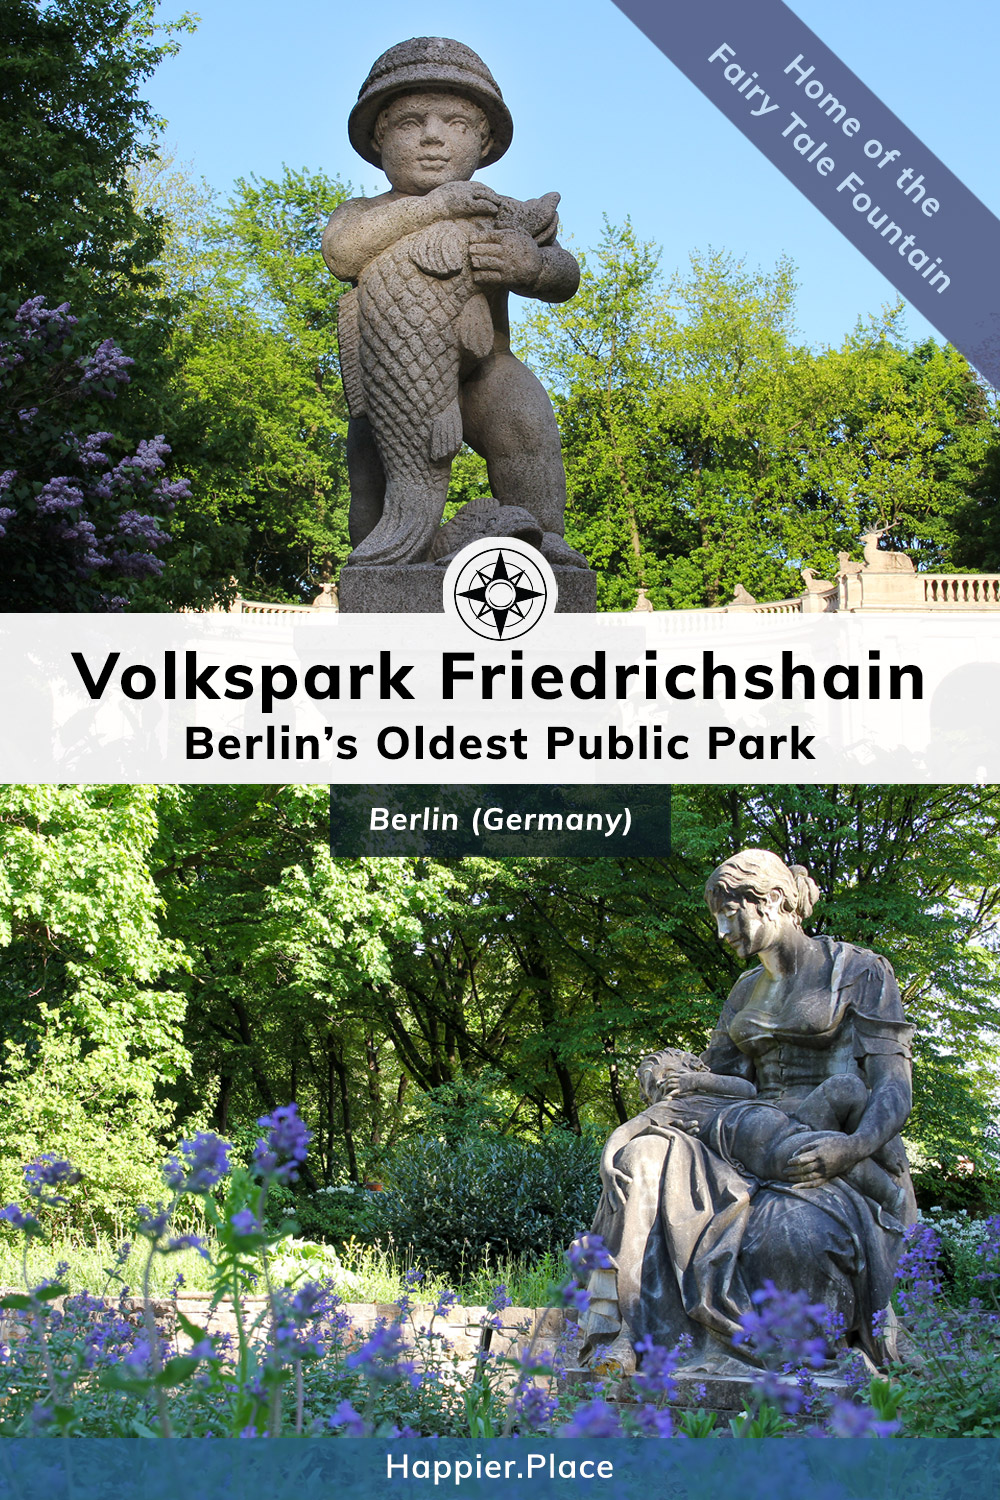 Berlins Oldest Park, Volkspark Friedrichshain, statues, purple flowers, Maerchenbrunnen